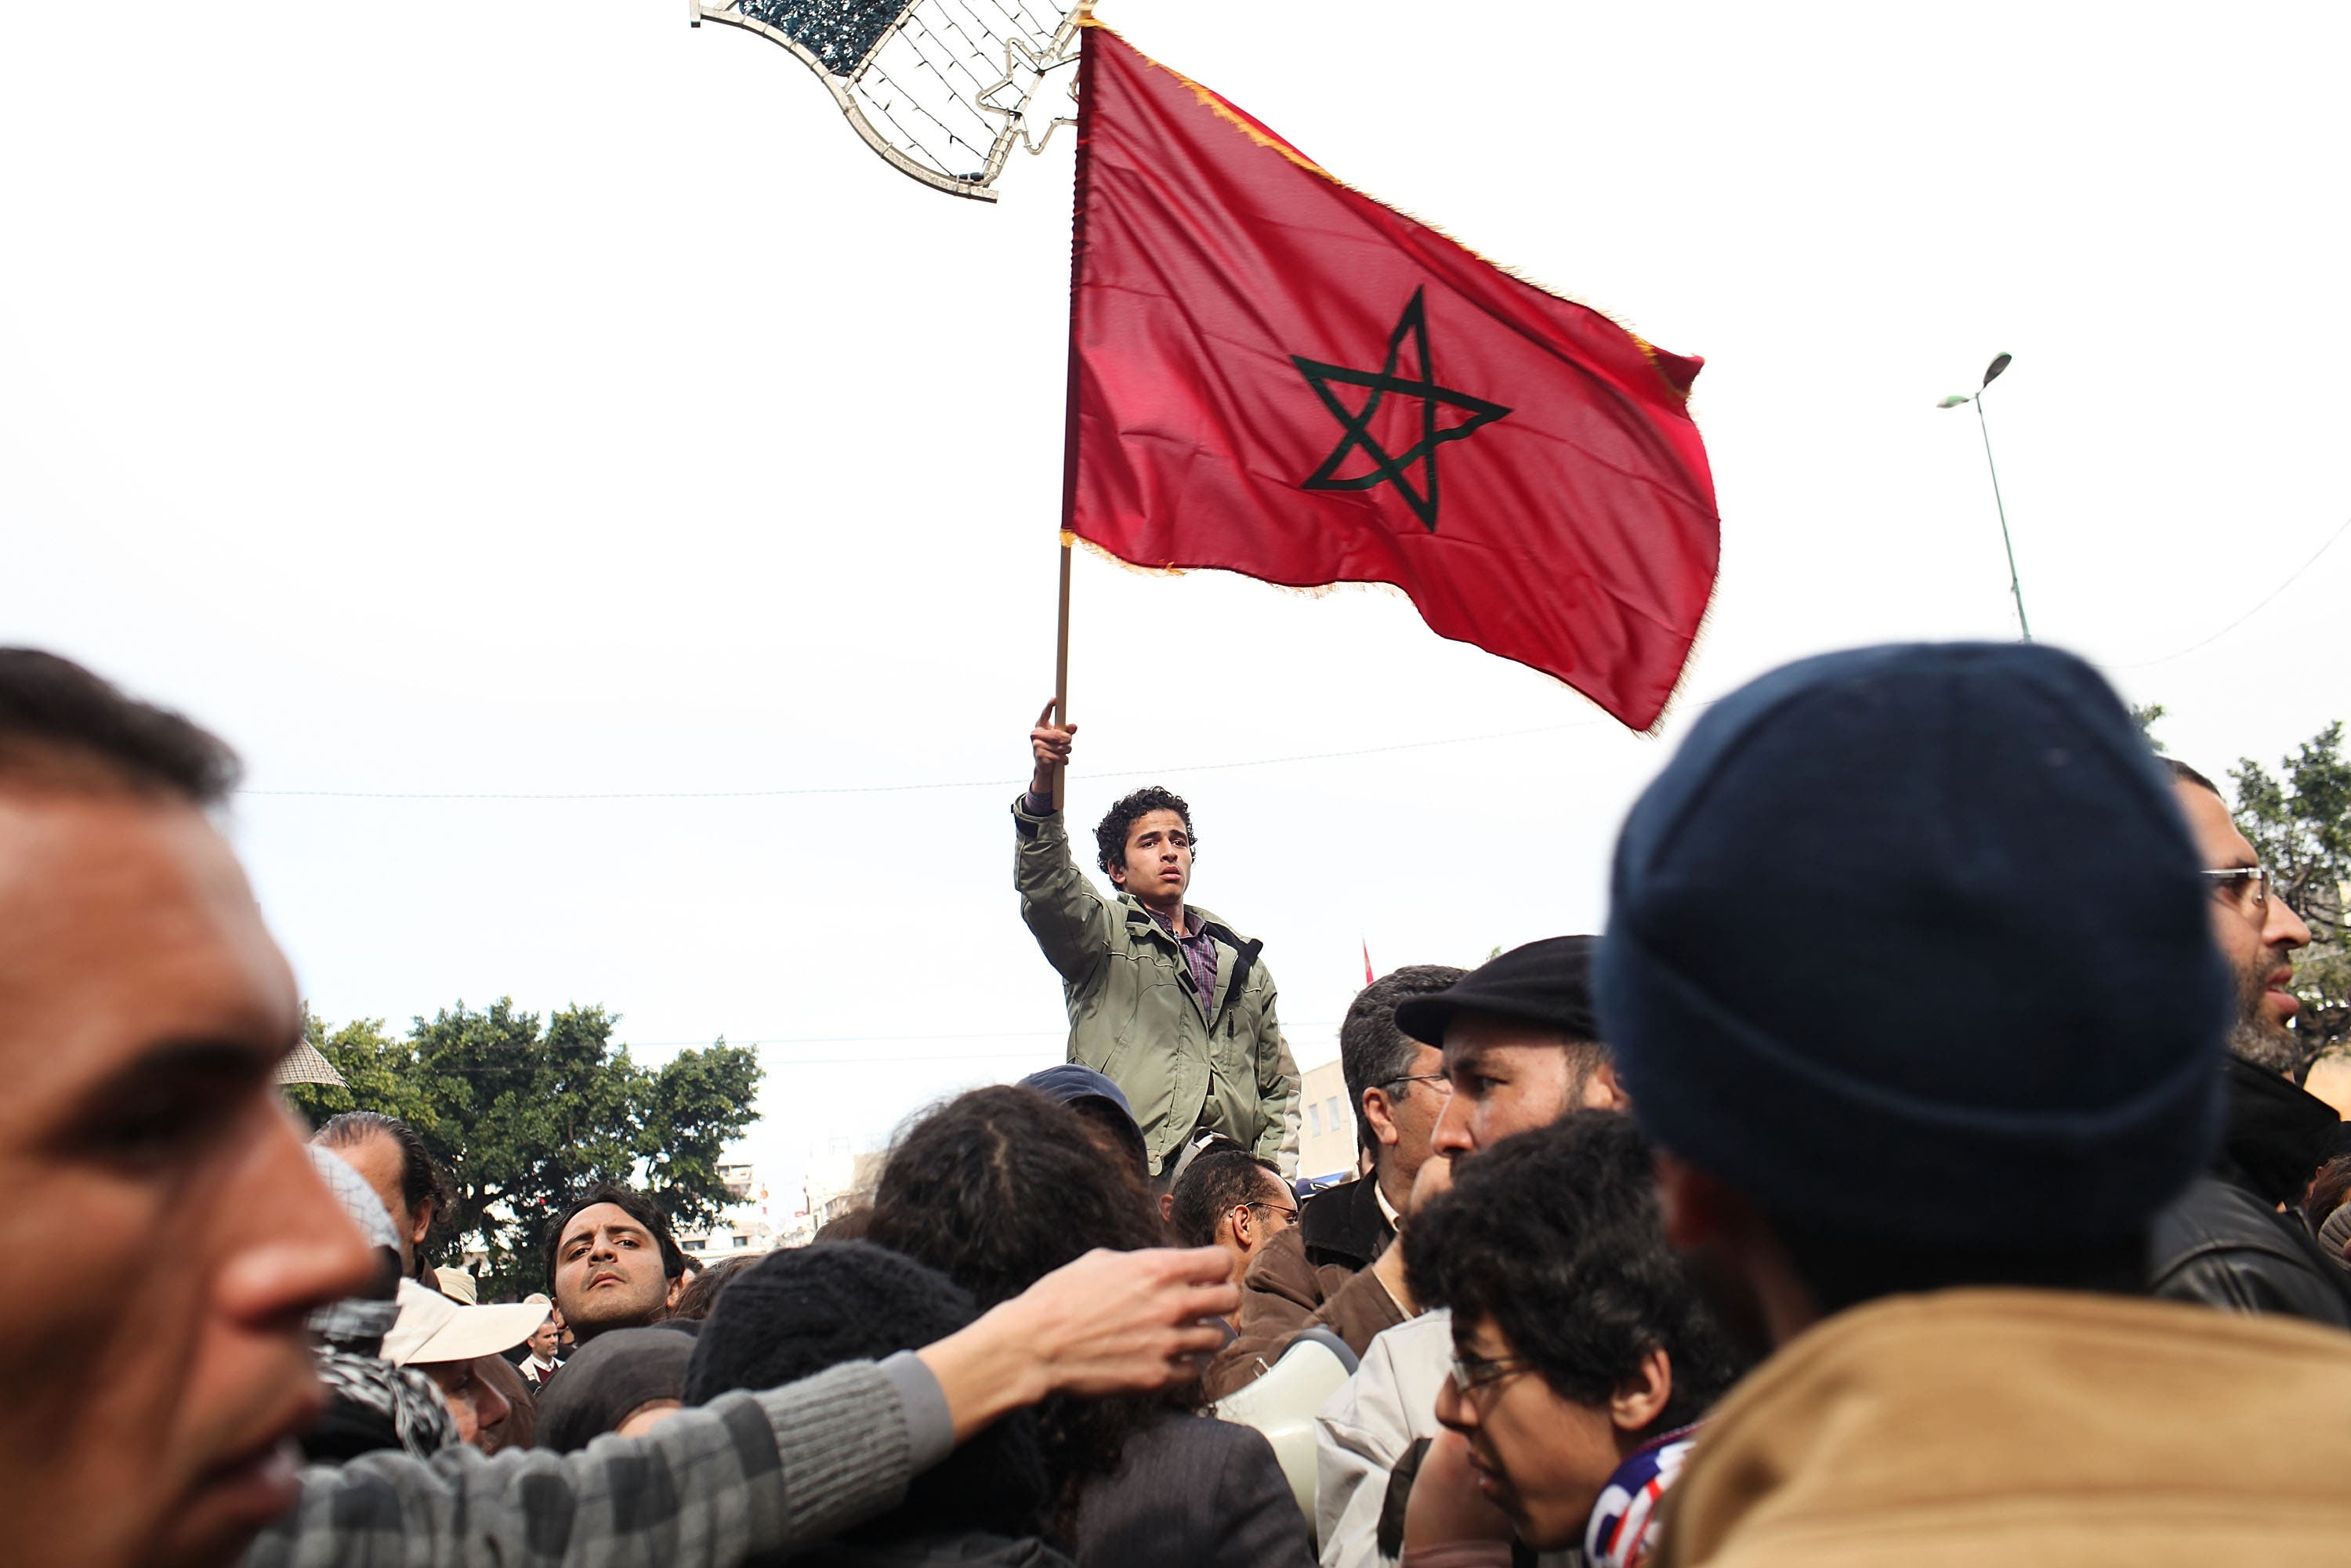 Morocco has been a low-key, side-lined protesting Arab nation, but is still one to watch as protesters have died and anger is bubbling.